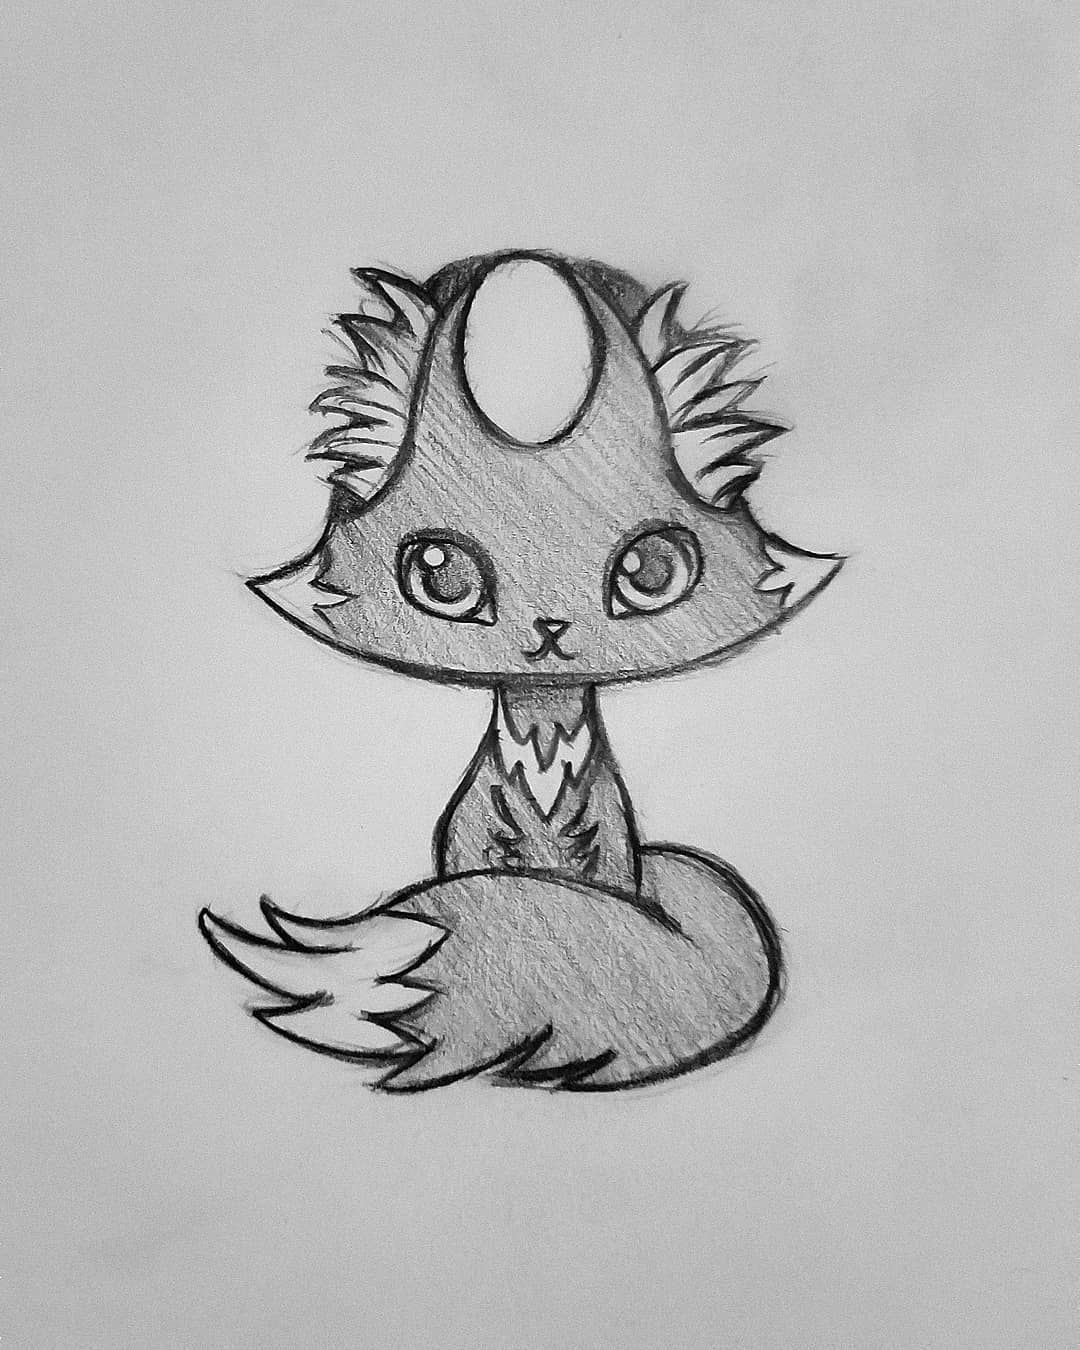 anime animals drawings how to draw an anime fox step by step anime animals animals drawings anime